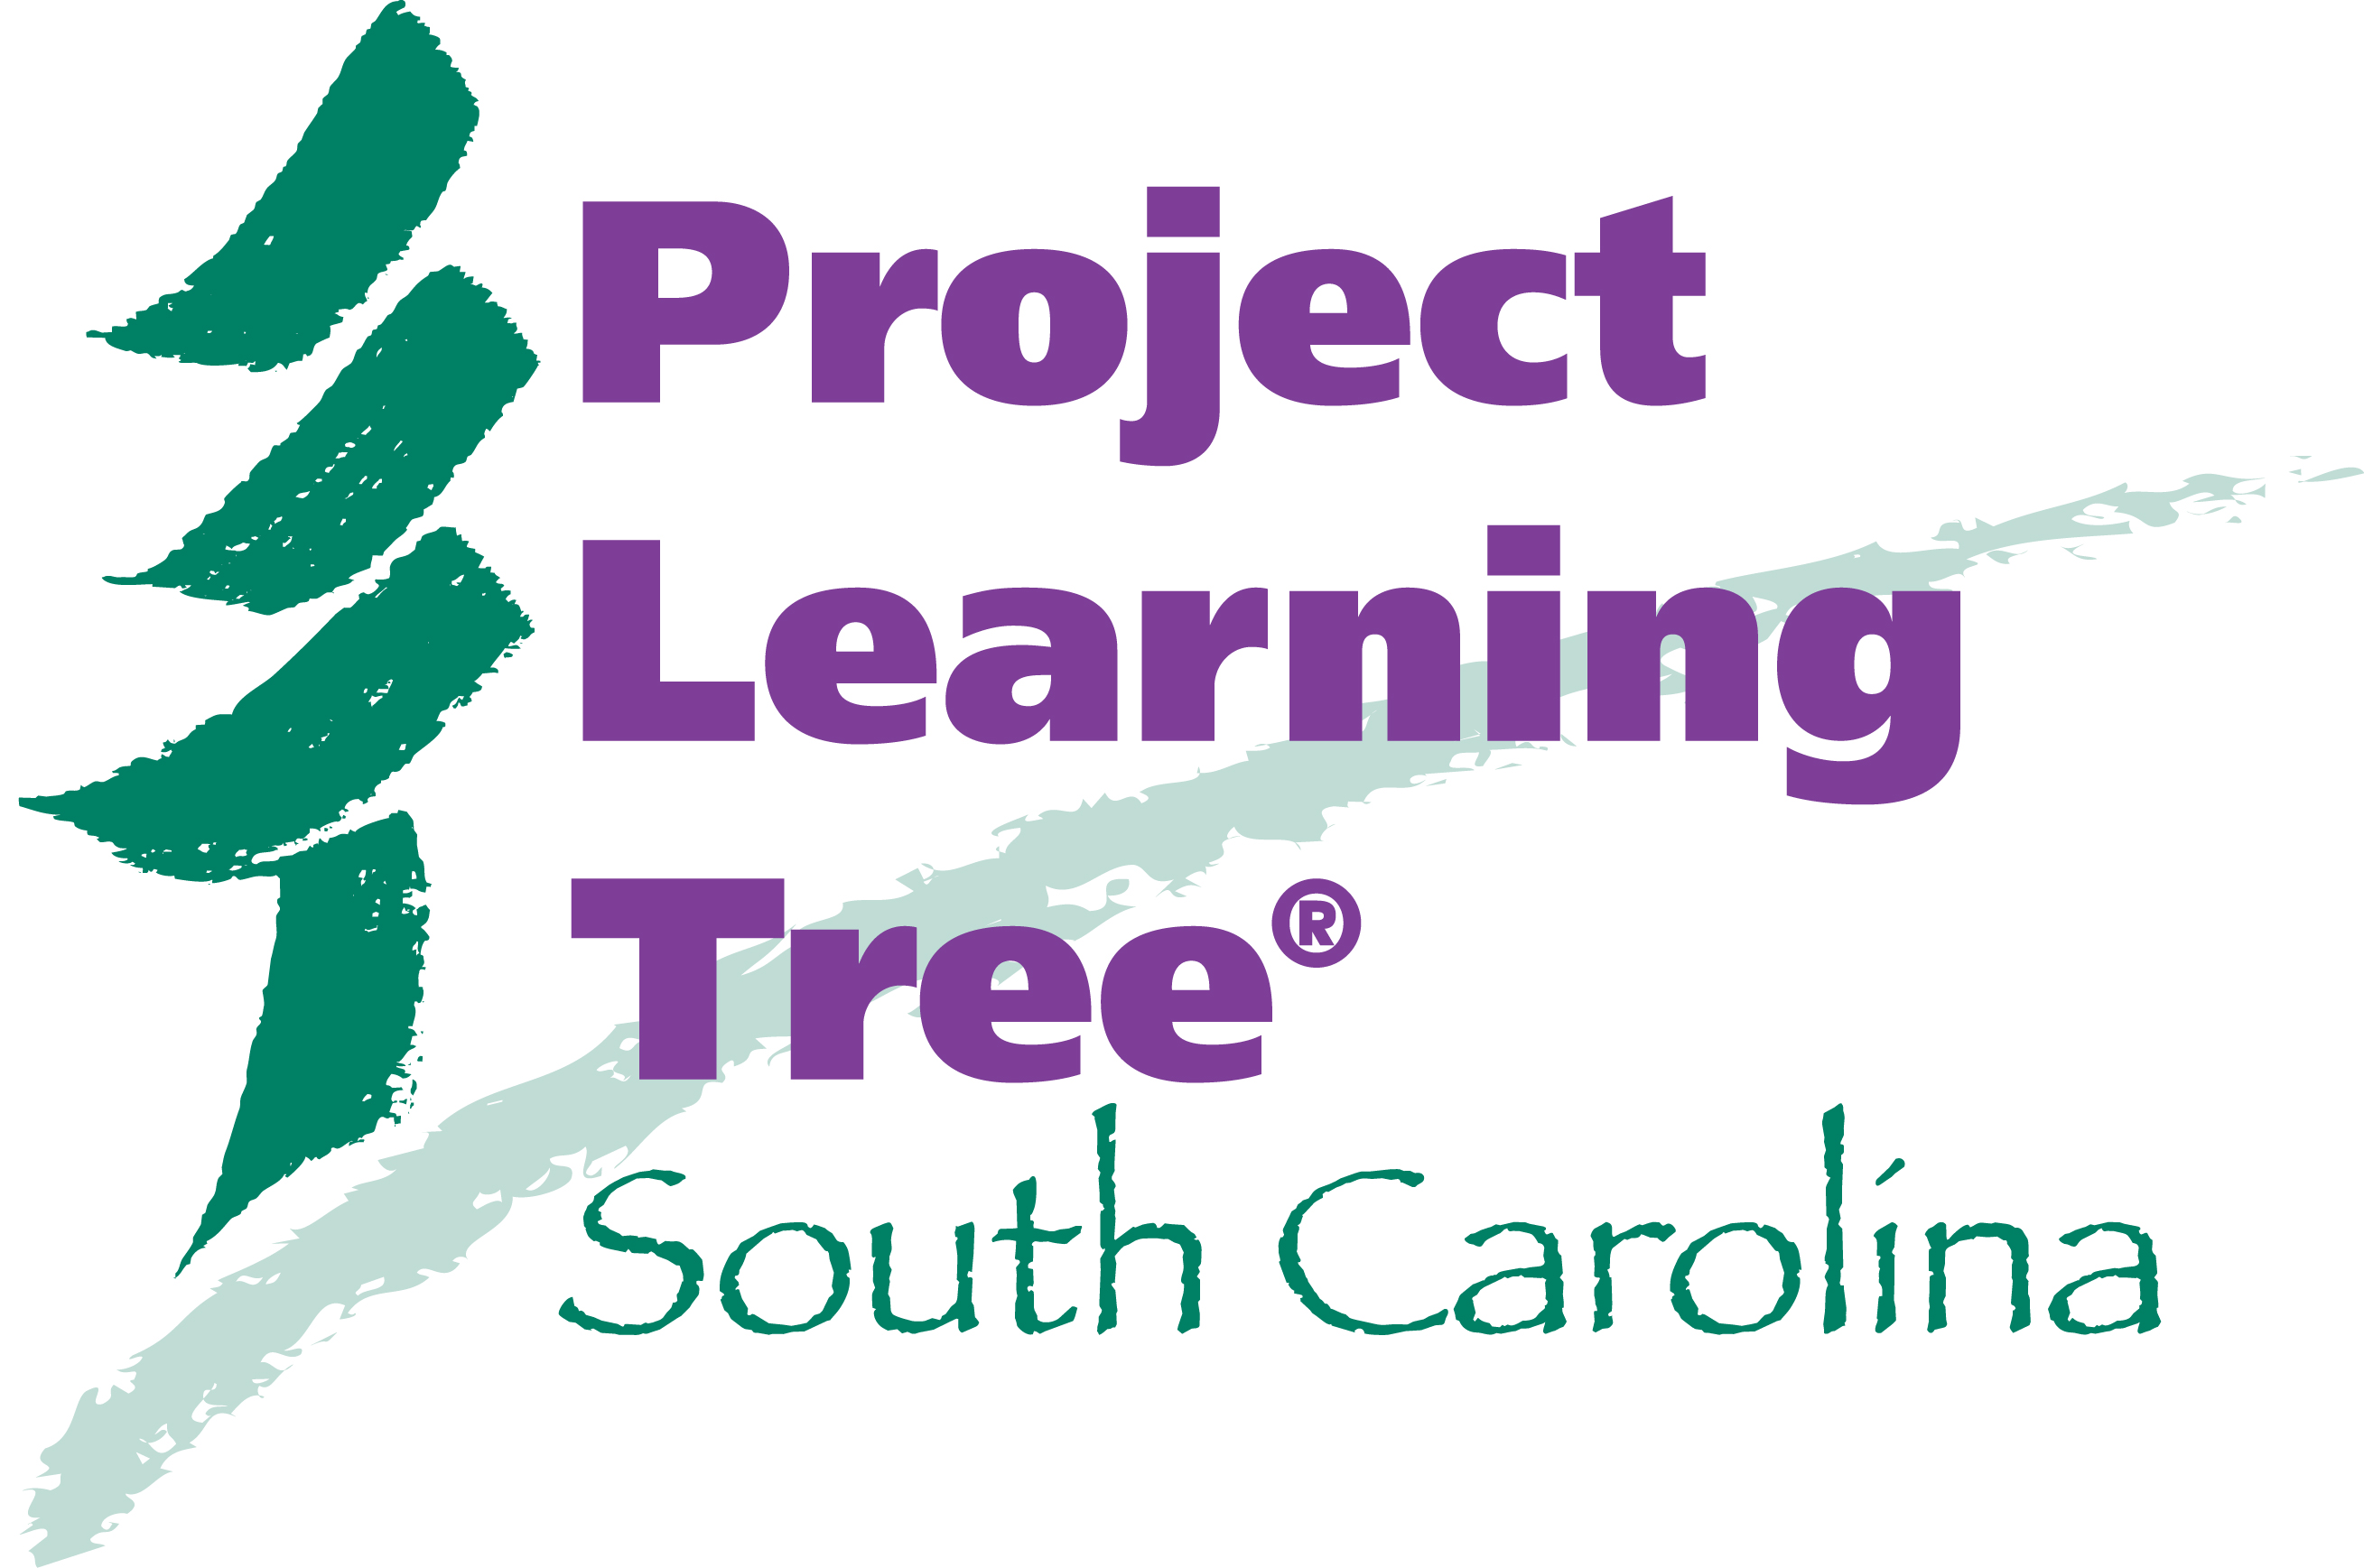 Project Learning Tree